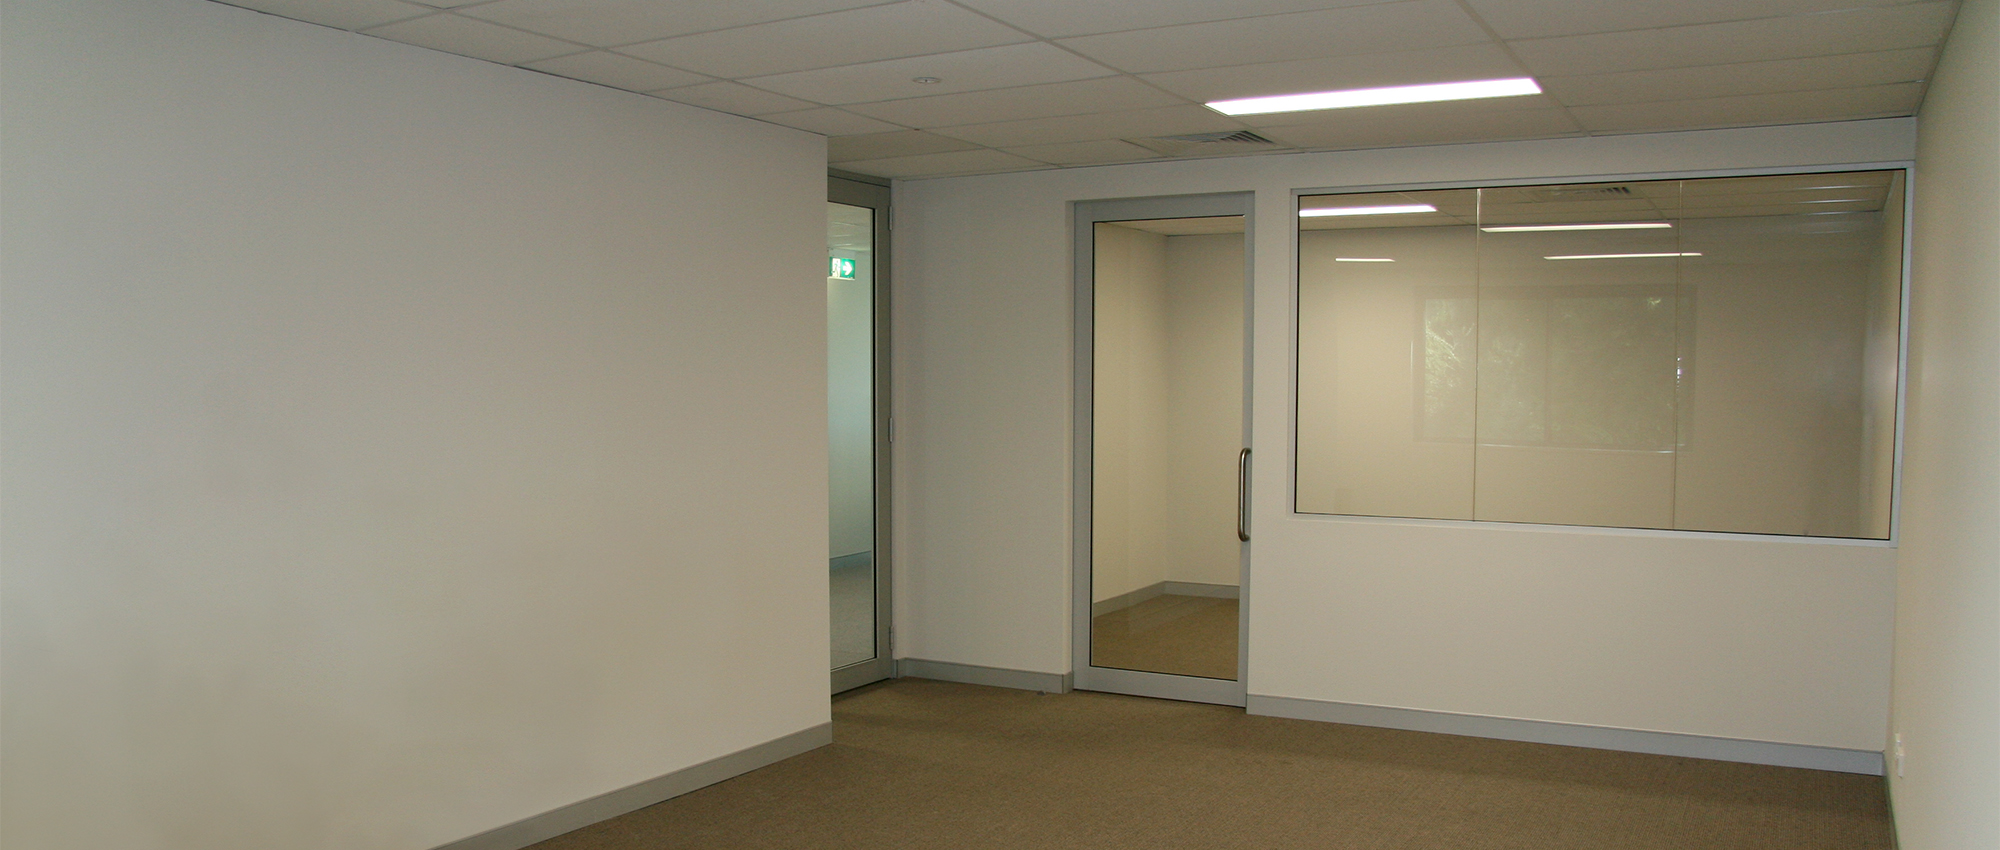 Office Plus Perth Fit Out Wall and Window 02 Glass Glazing Office Wall Construction Fit out Door Skirting Design